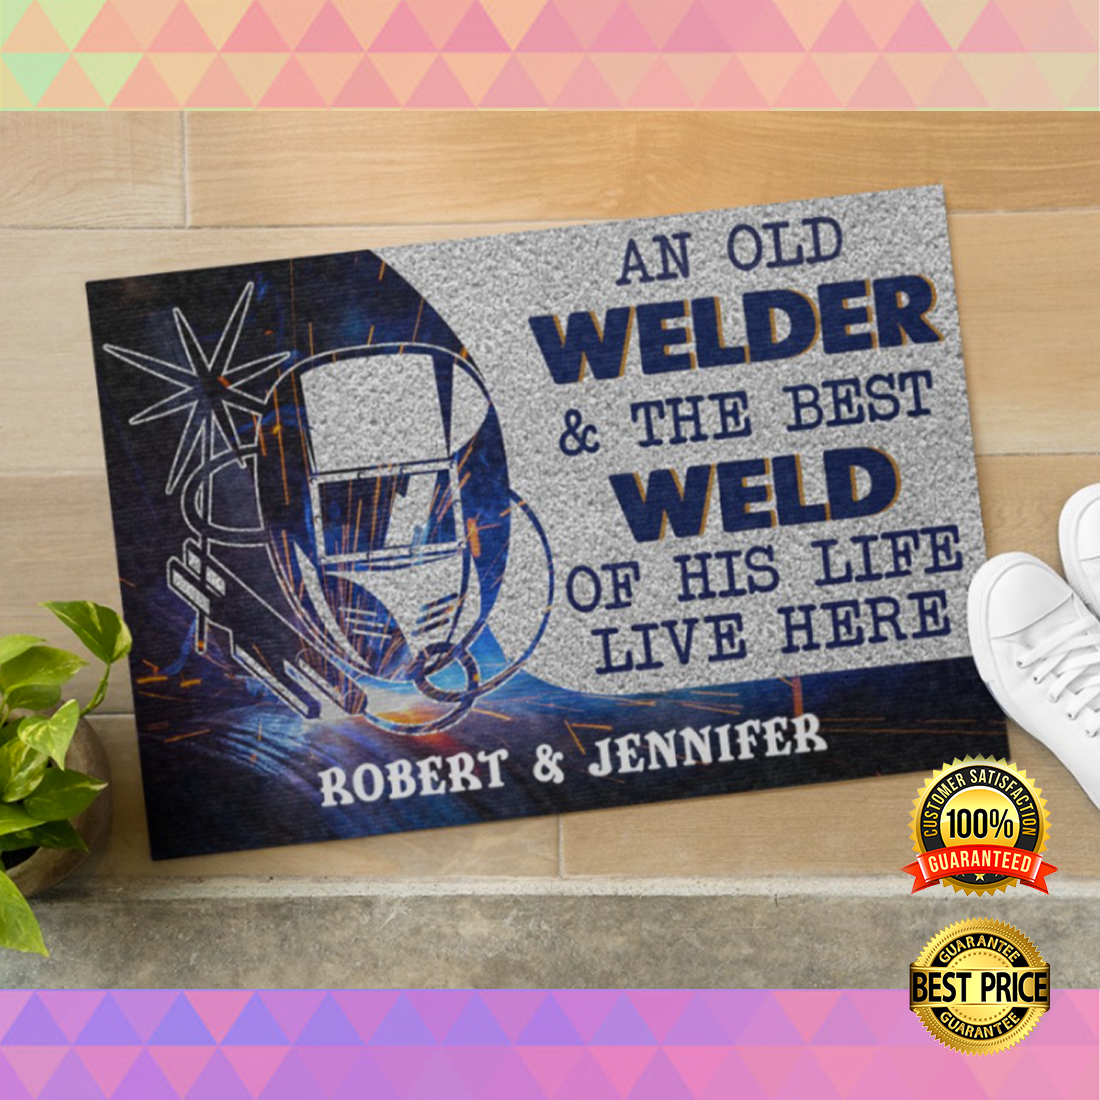 PERSONALIZED AN OLD WELDER AND THE BEST WELD OF HIS LIFE LIVE HERE DOORMAT 5